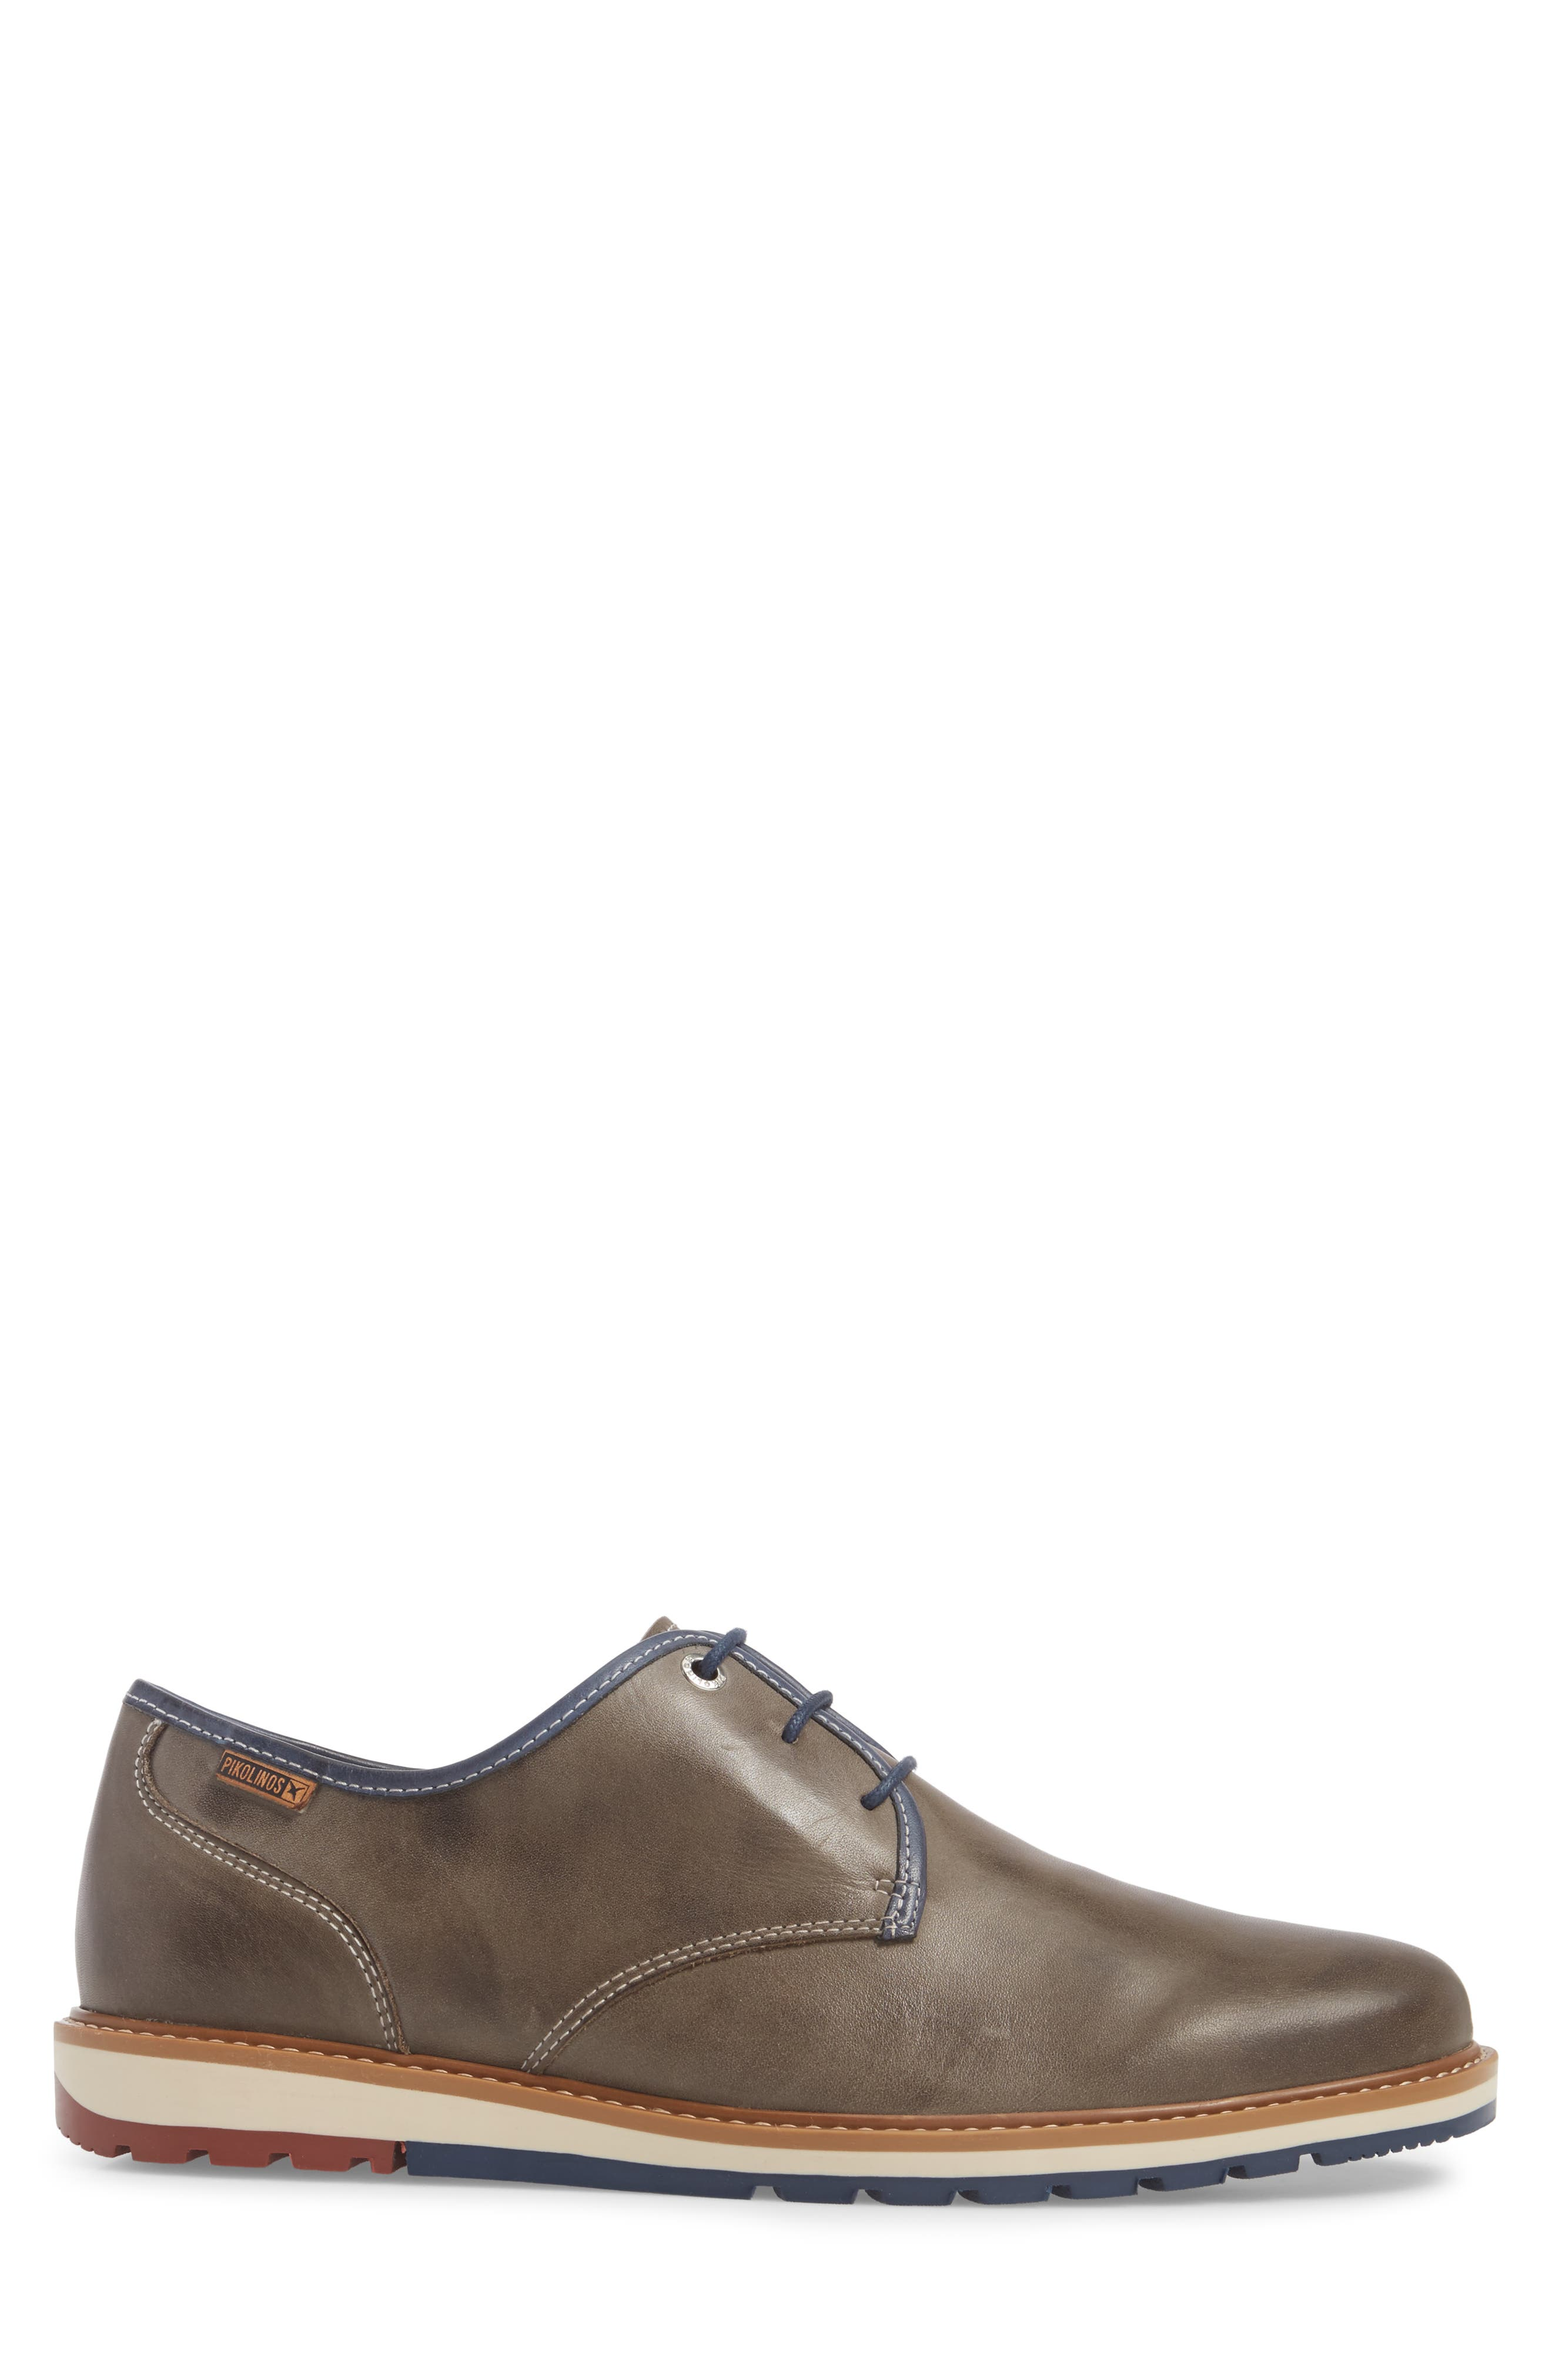 Alternate Image 3  - PIKOLINOS Berna Plain Toe Oxford (Men)